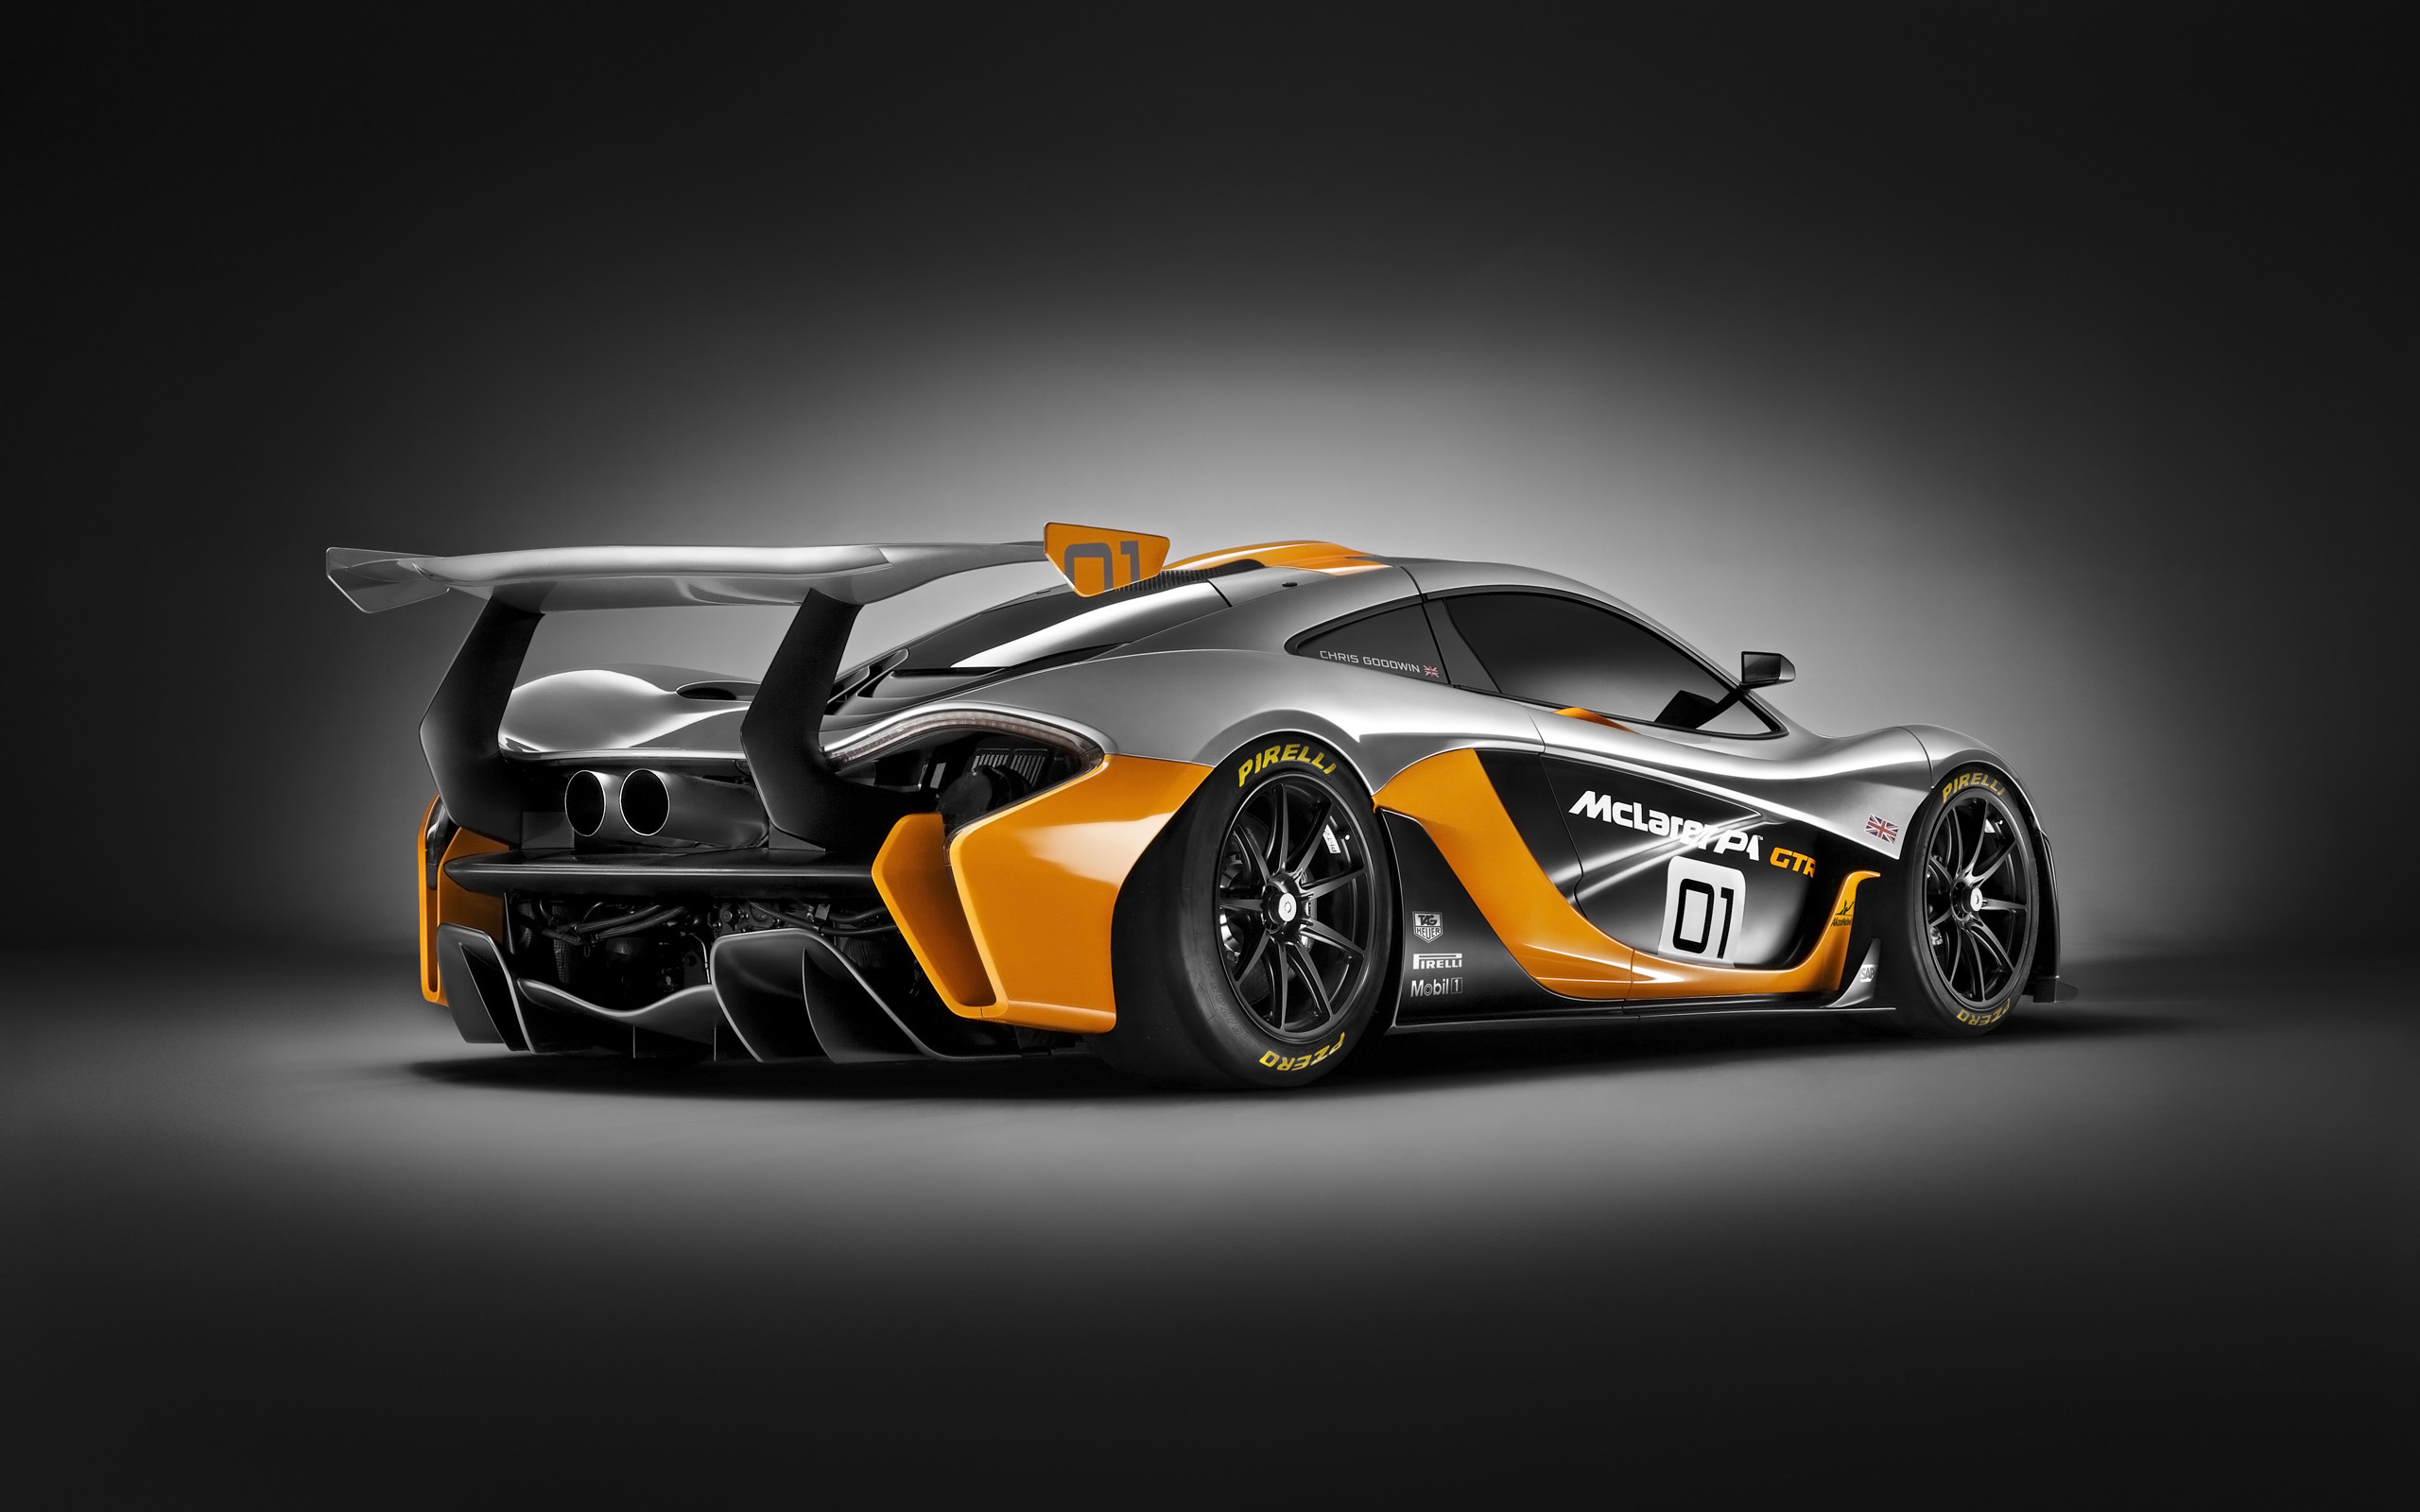 2014 mclaren p1 gtr design concept 2 wallpaper hd car. Black Bedroom Furniture Sets. Home Design Ideas